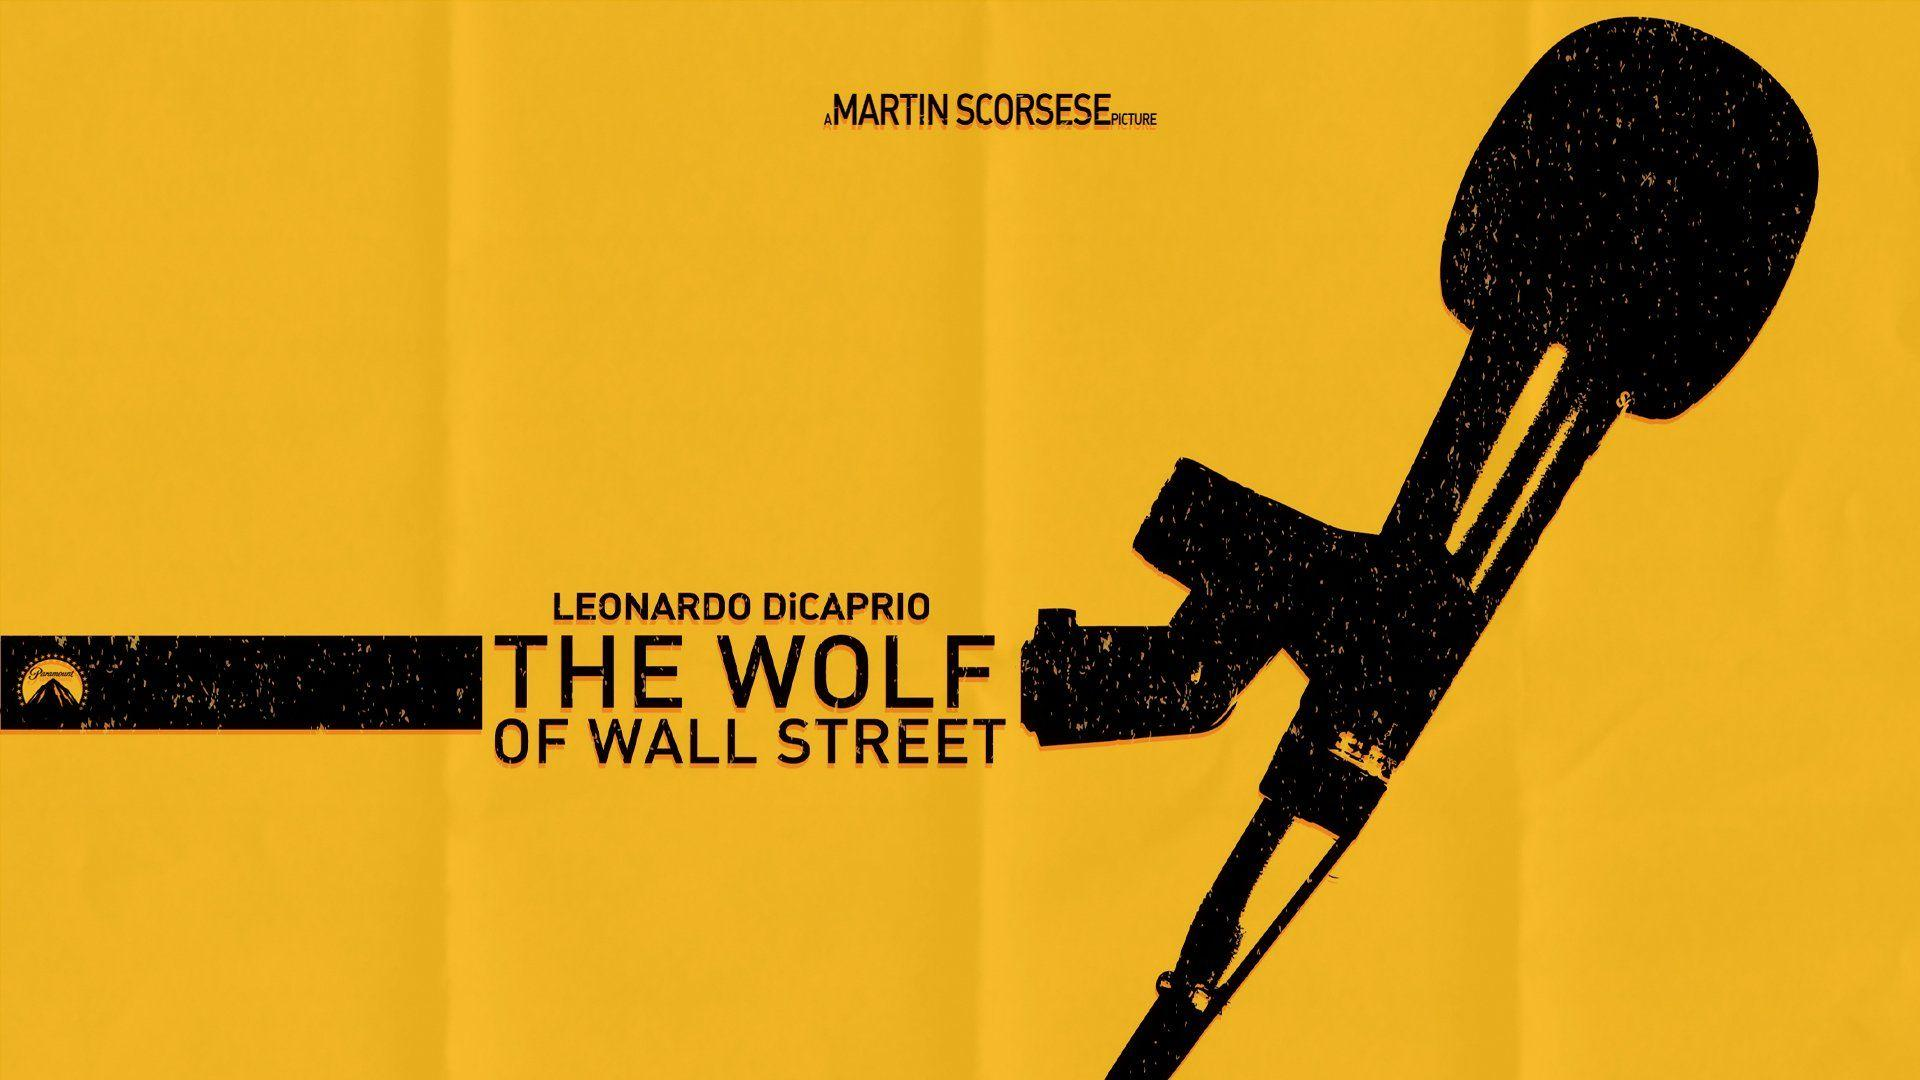 The wolf of wall street wallpapers